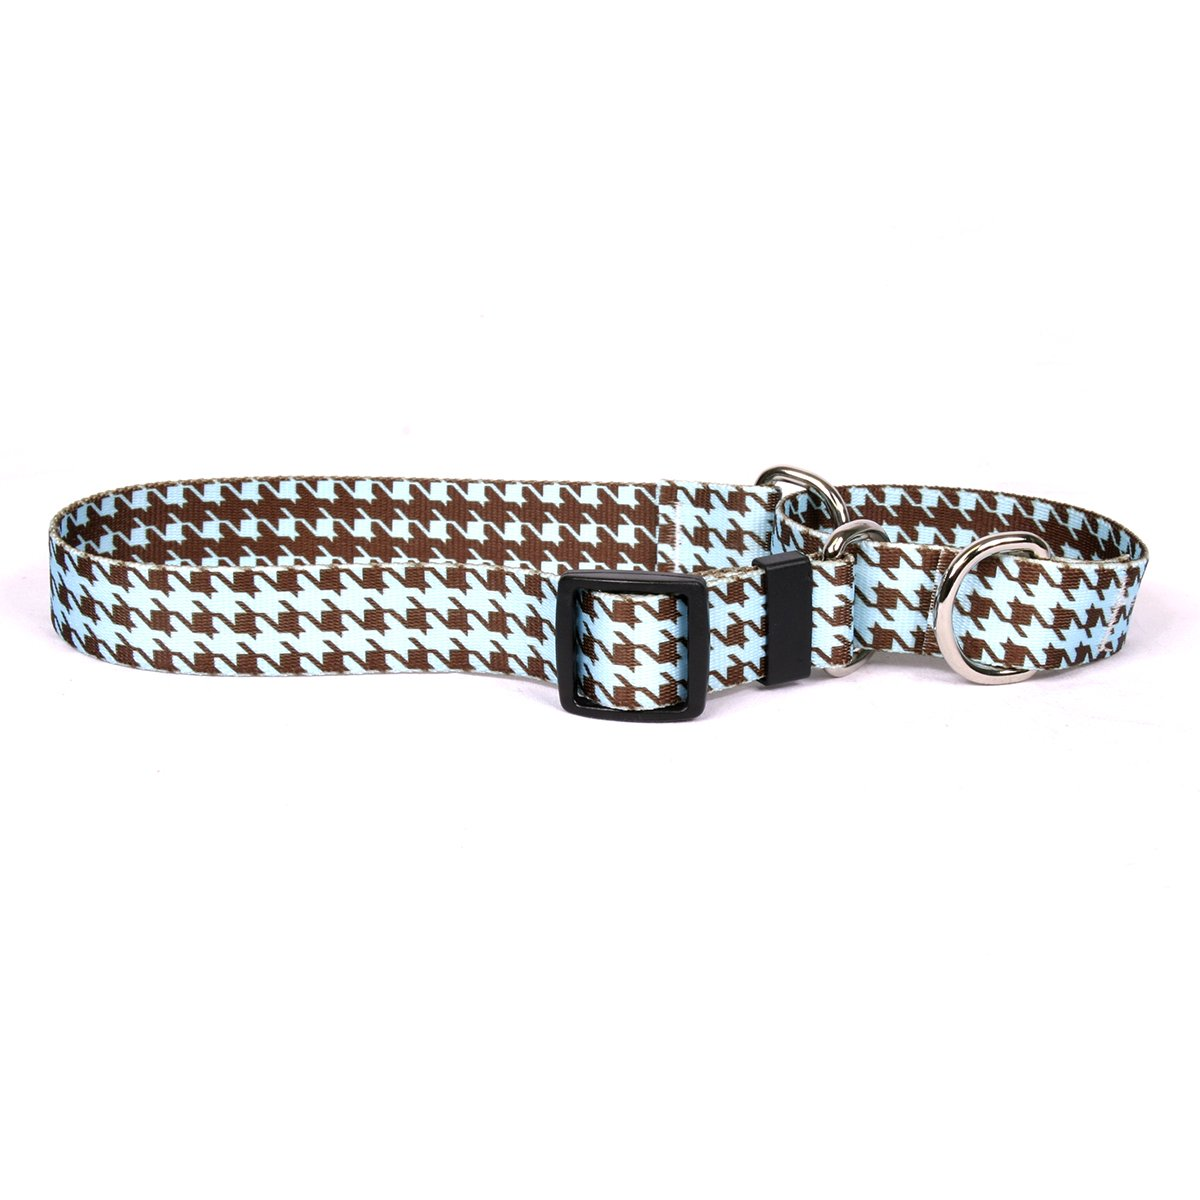 Yellow Dog Design Hounds Tooth Blue and Brown Martingale Dog Collar 1'' Wide and Fits Neck 18 to 26'', Large